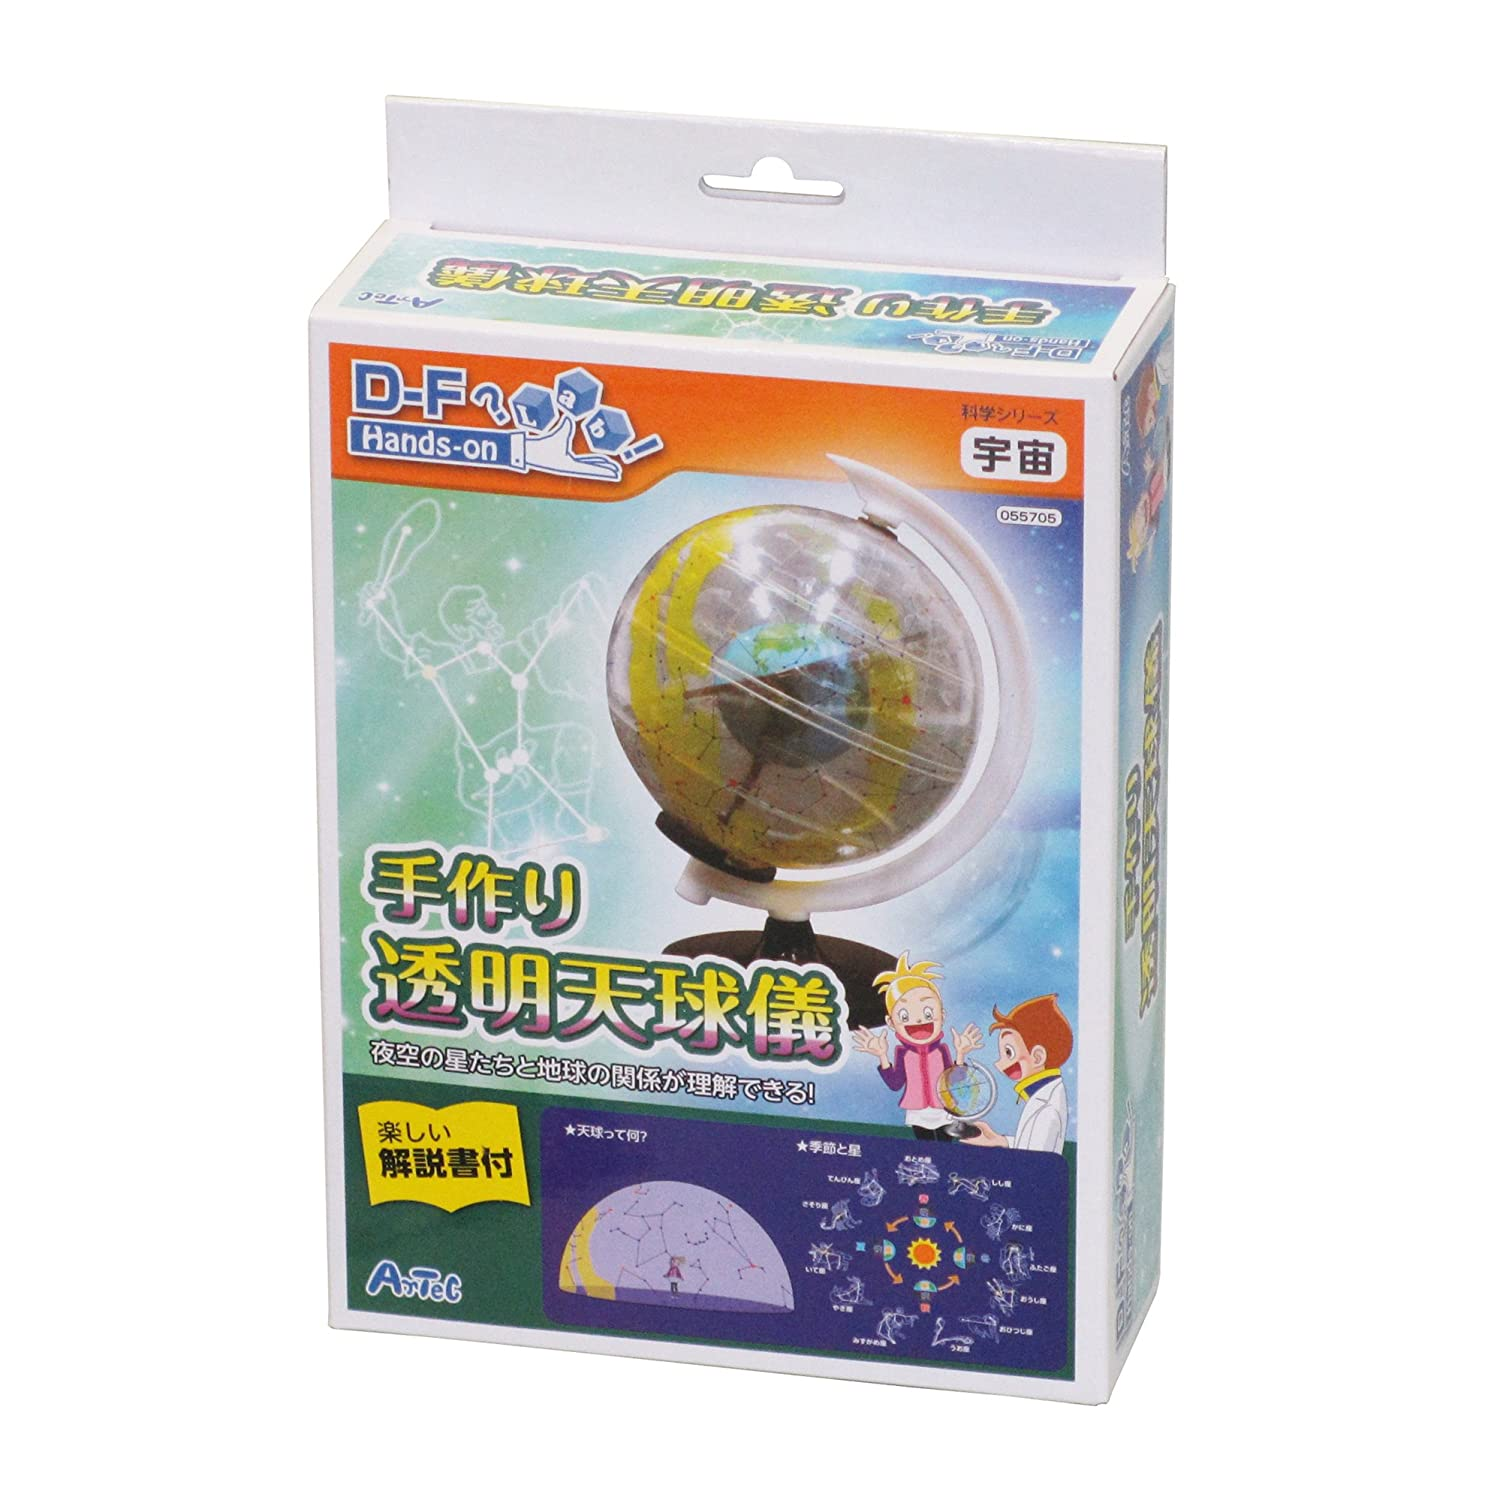 Transparent celestial globe and Ri [work] science astronomy and space hand work (japan import)